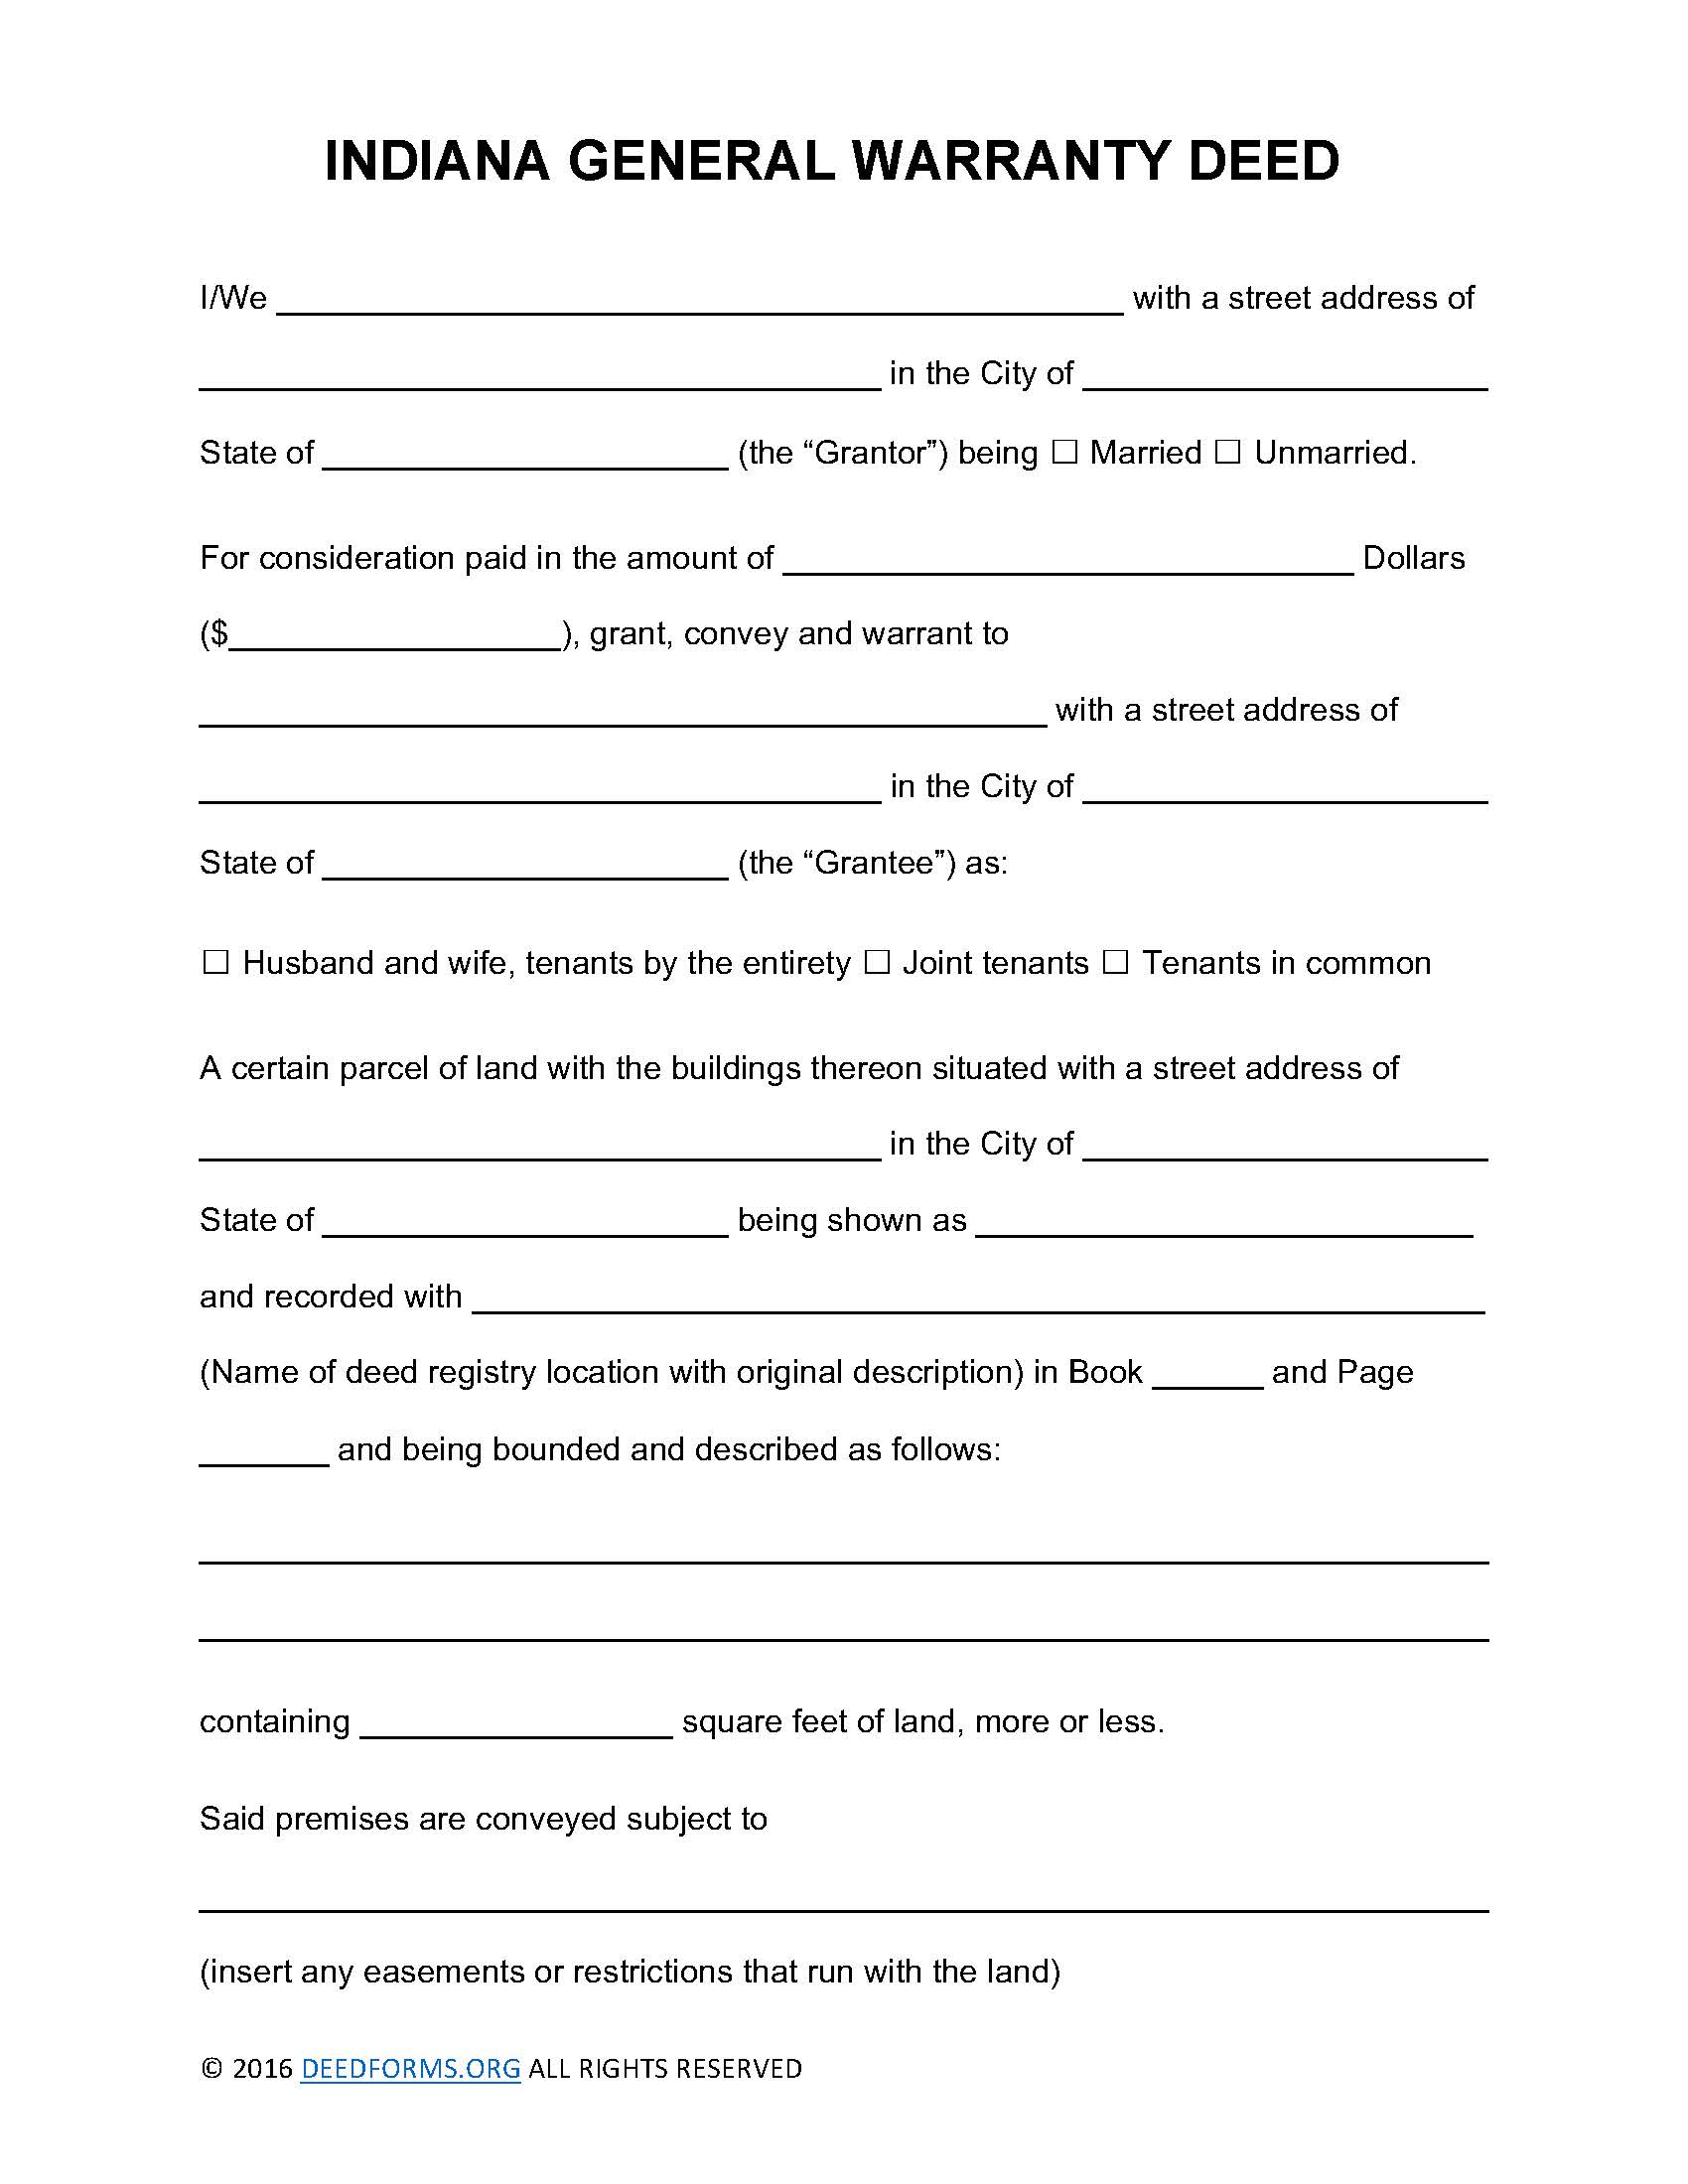 Indiana General Warranty Deed Form - Deed Forms : Deed Forms